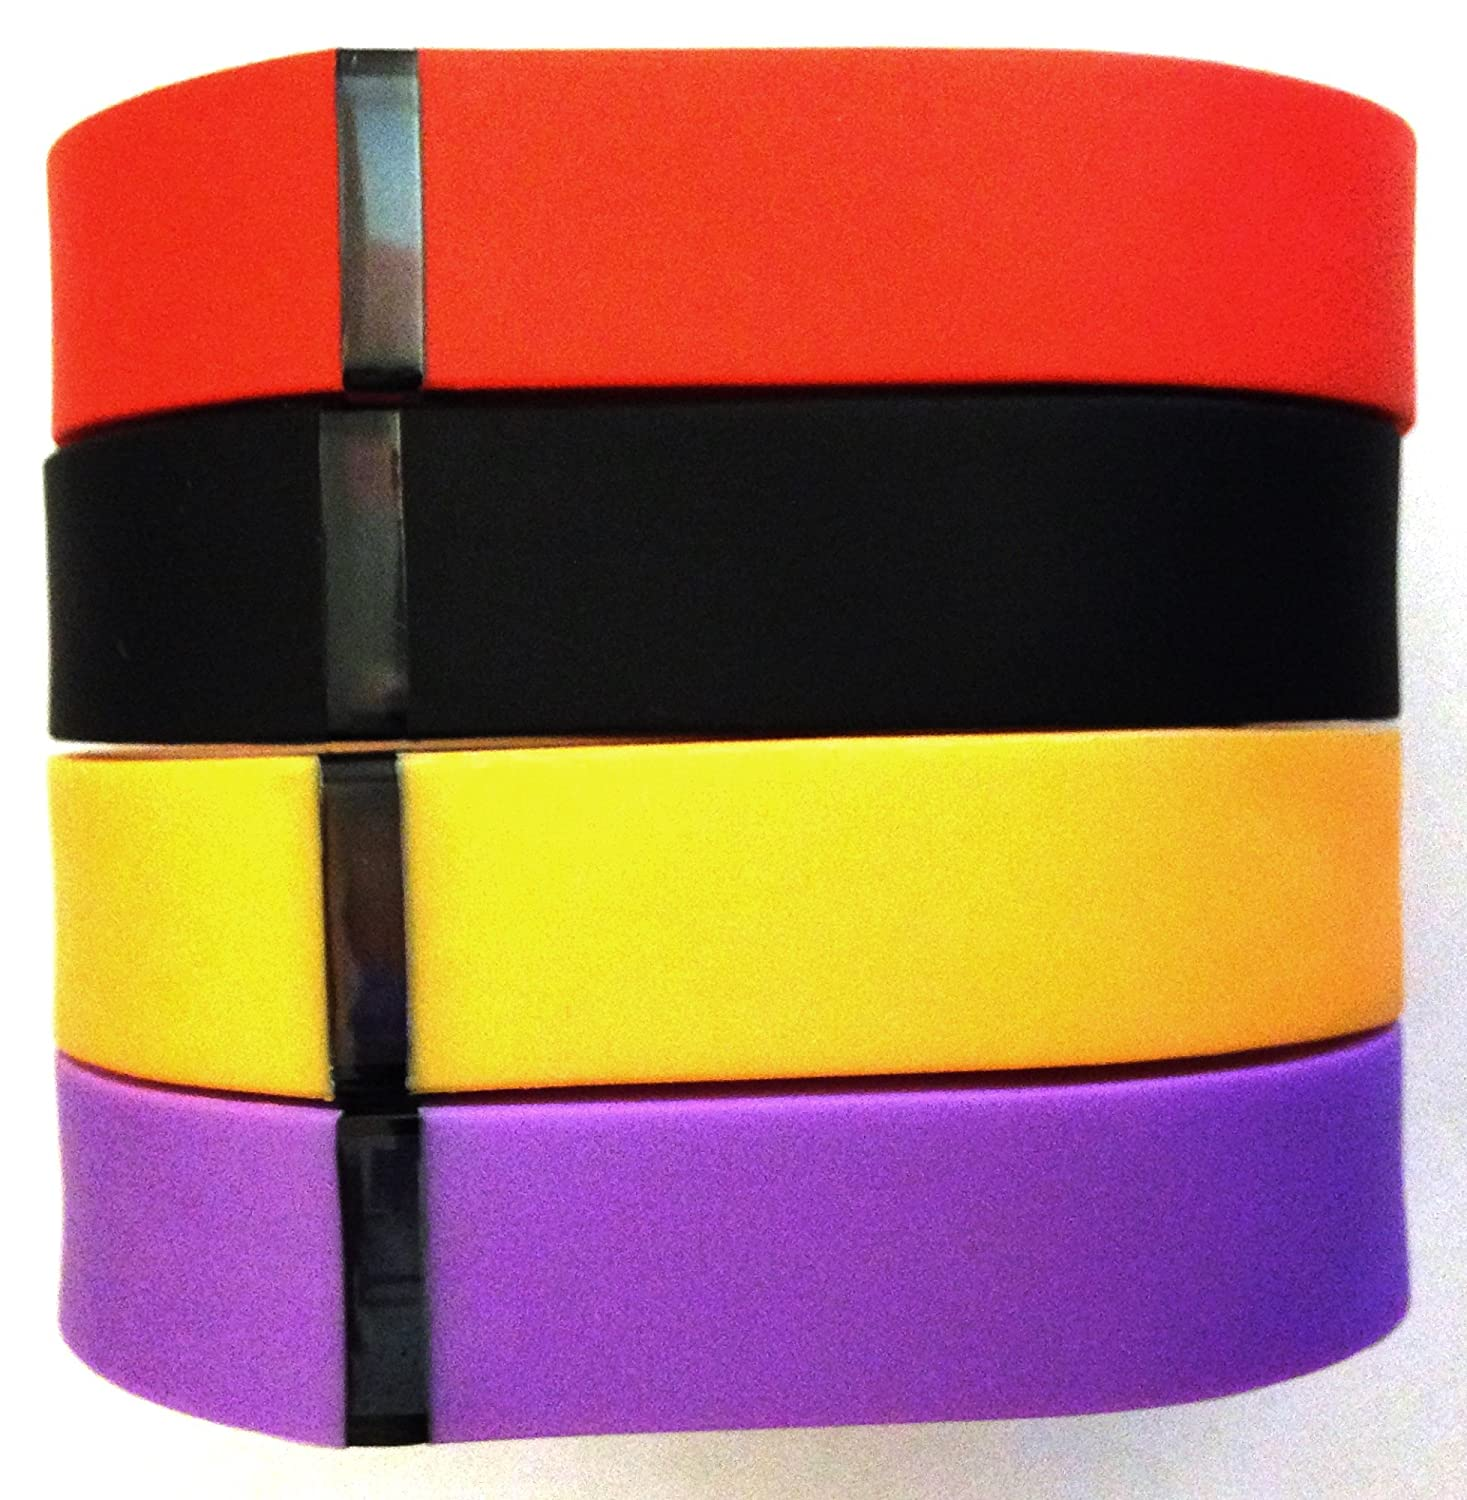 Set Large L 1pc Orange 1pc Violet 1pc Red (Tangerine) 1pc Black Replacement Bands for Fitbit FLEX Only With Clasps /No tracker/ Wireless Activity Bracelet Sport Wristband Fit Bit Flex Bracelet Sport Arm Band Clasp Armband